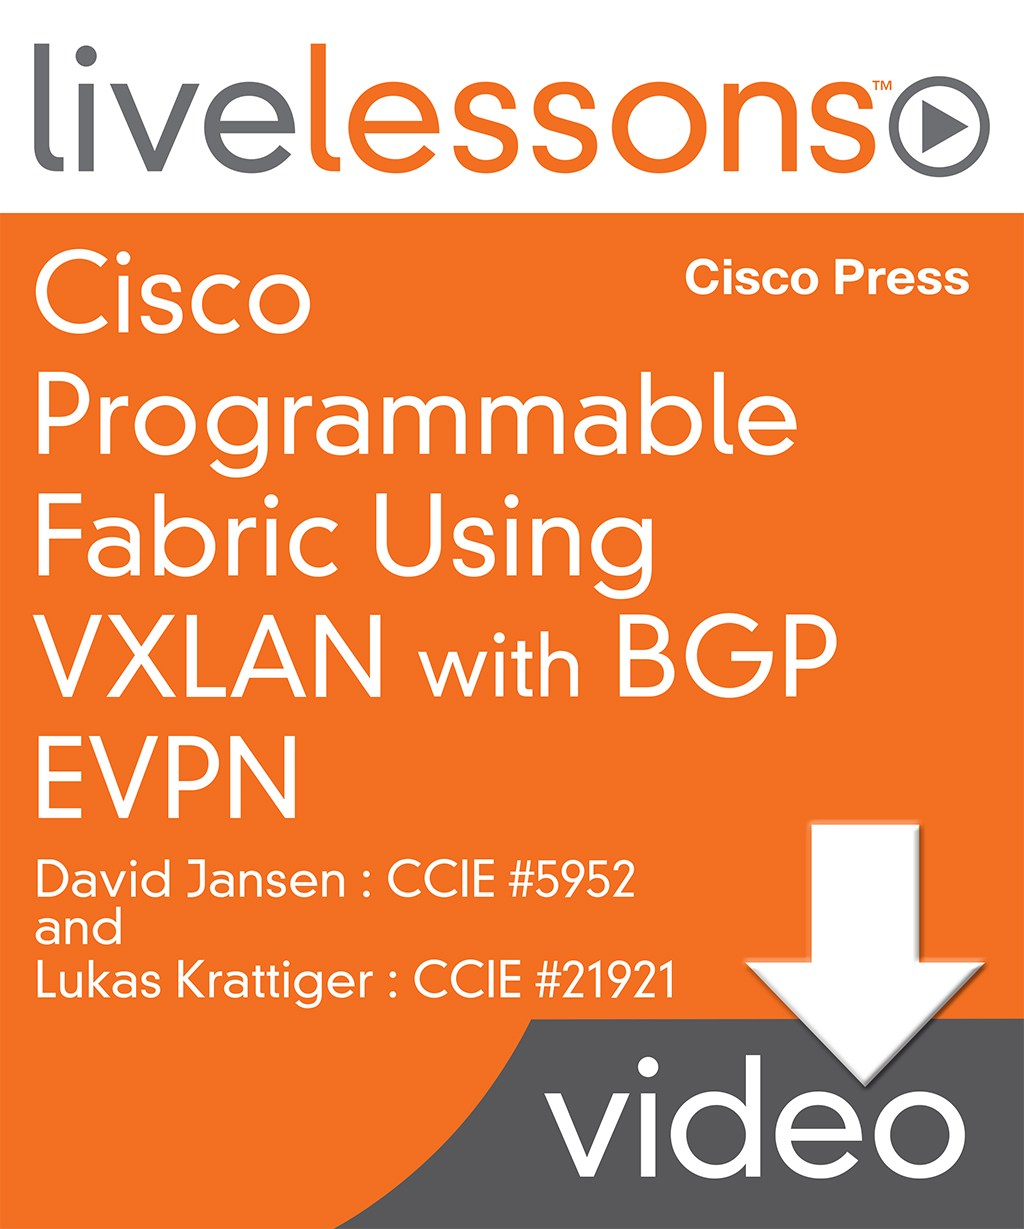 Cisco Programmable Fabric Using VXLAN with BGP EVPN LiveLessons